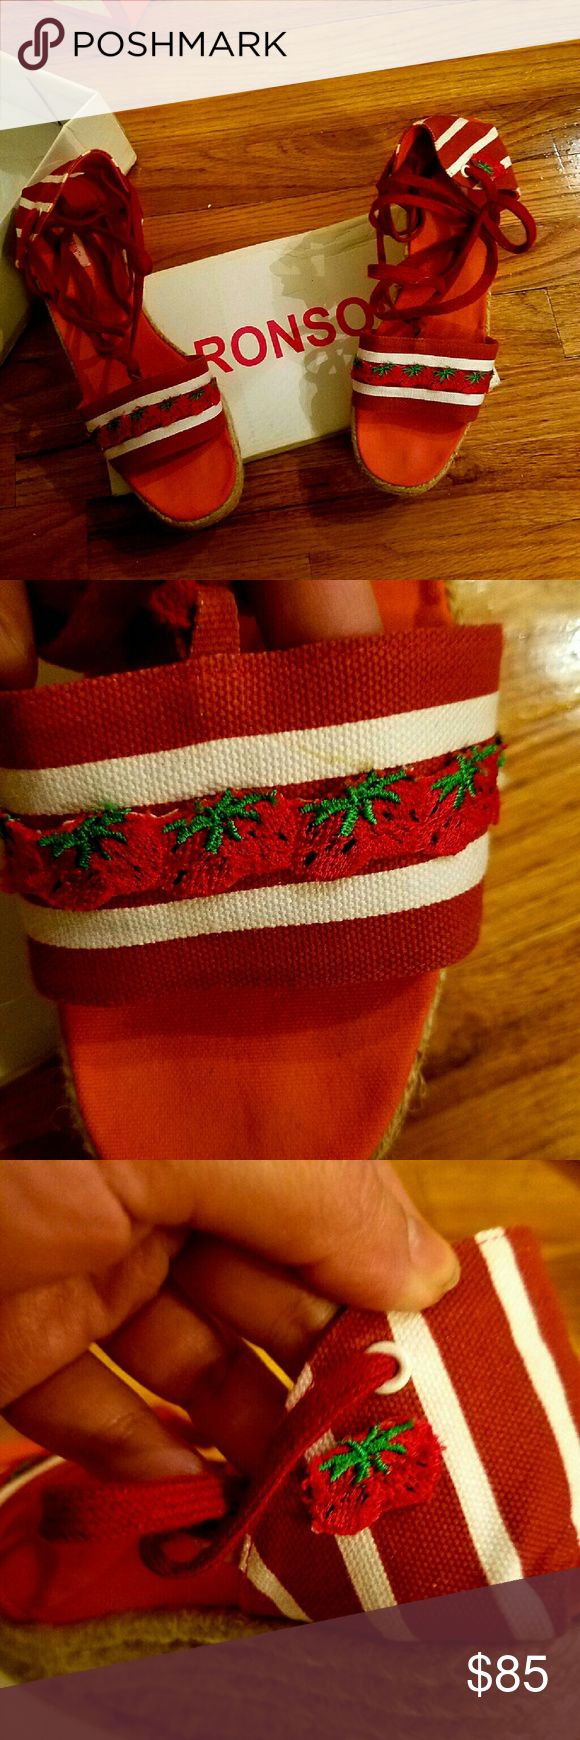 Charlotte Ronson Strawberry Espadrilles, Size 9 These espadrilles are adorable and rare - impossible to find!  They have been lightly used, and in excellent condition.  Vibrant red/white stripes with cute little strawberry detailing across the top, and on the back.  Bright red strings lace up the shies, and straw jute 3 inch wedge heel.  Perfect shoes for a fashion junkie! Charlotte Ronson Shoes Espadrilles